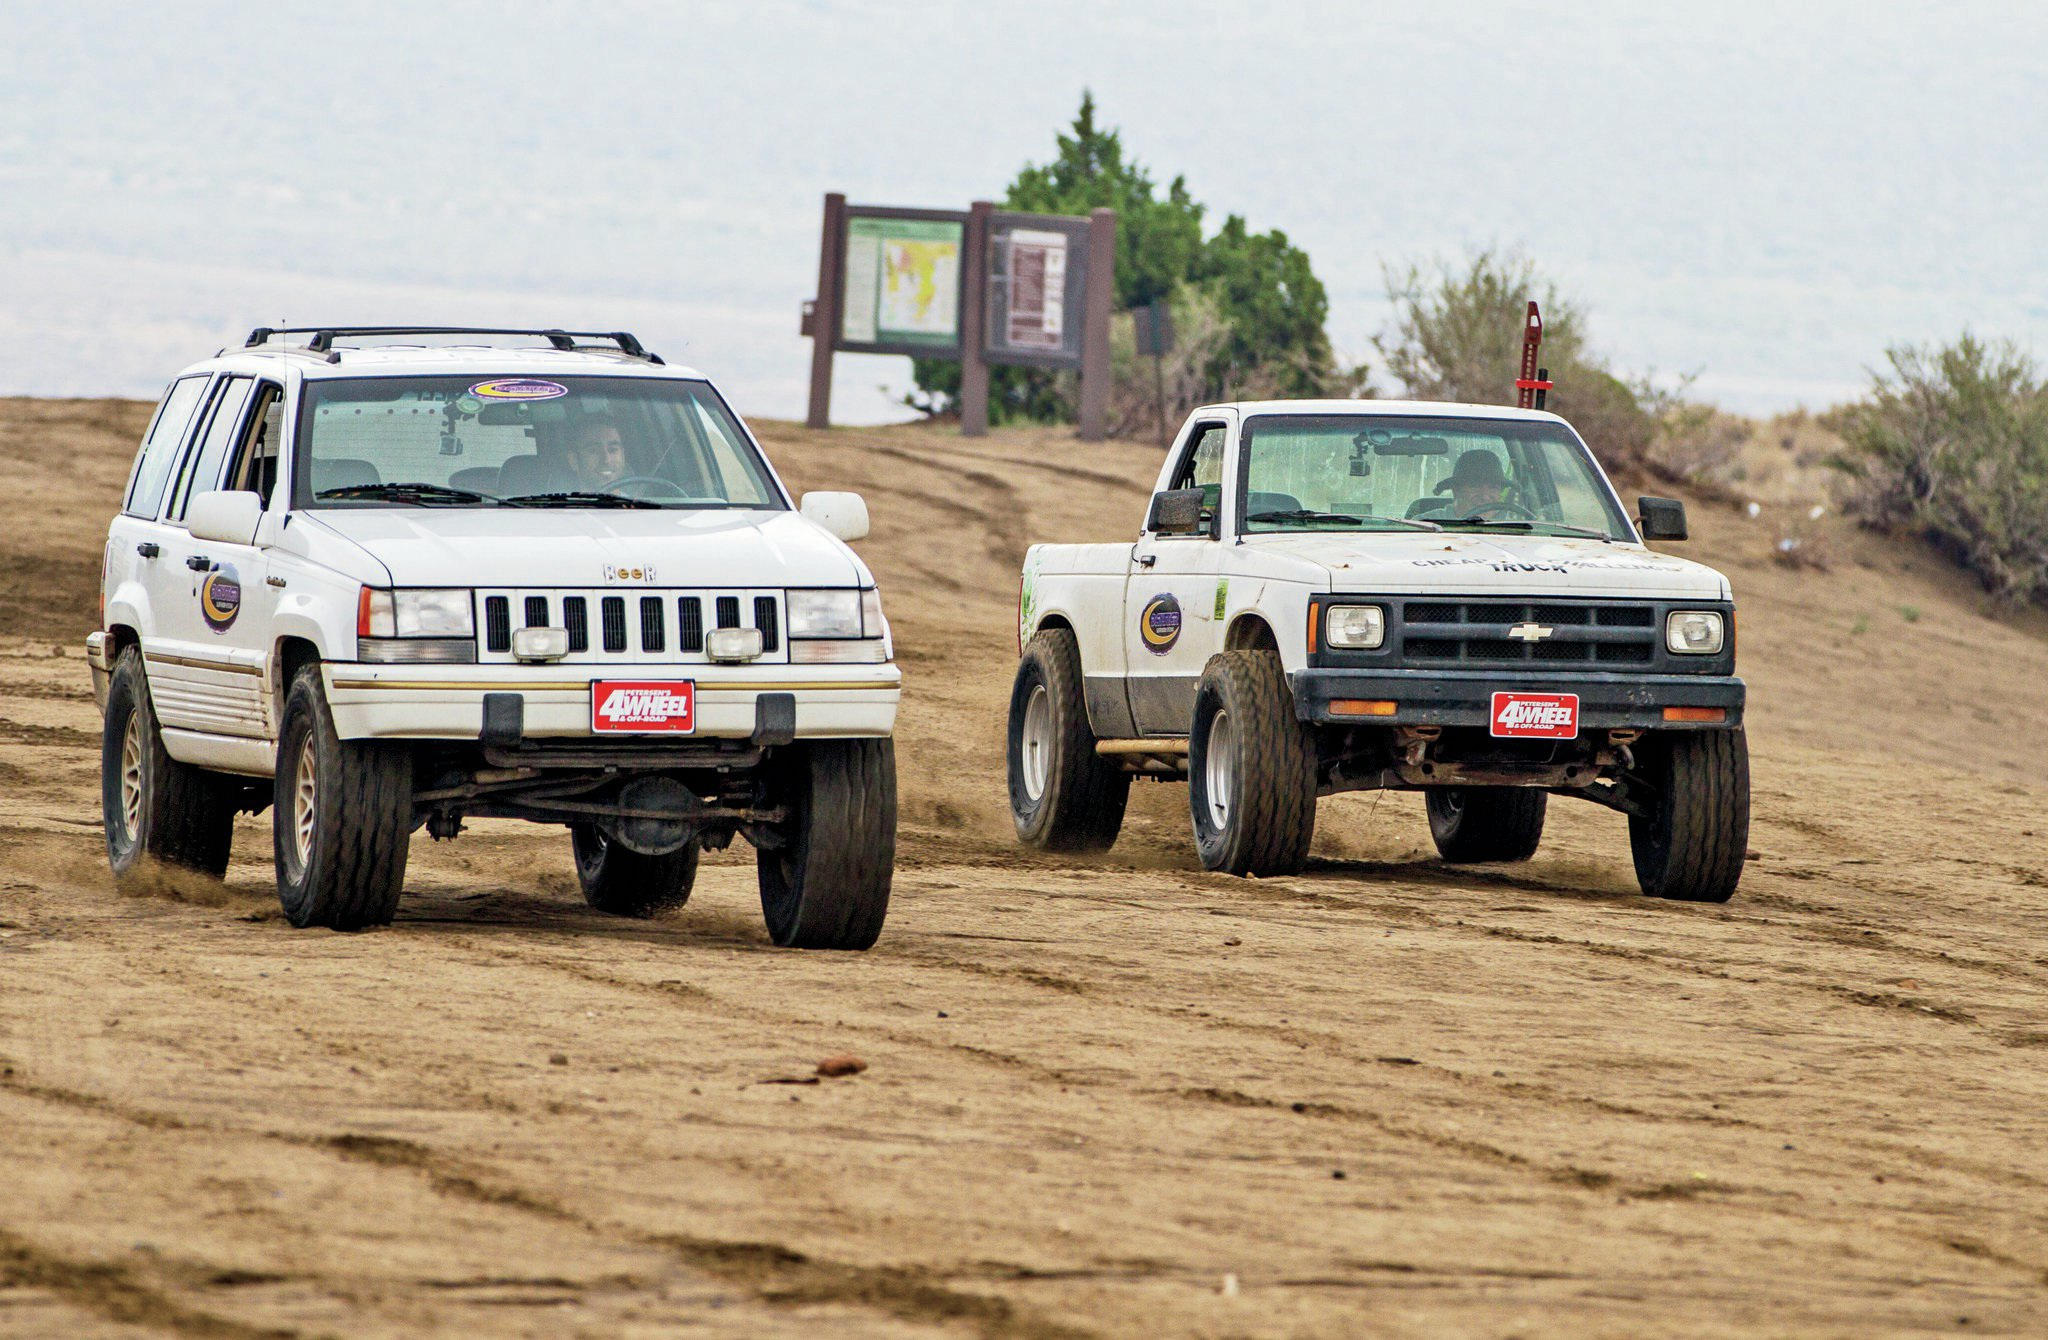 The V-8 engine, automatic transmission, and relatively light weight of Peterson's Grand Cherokee allowed him to run away from the other two vehicles in the drag race. Despite cries for rematches the results were always the same.